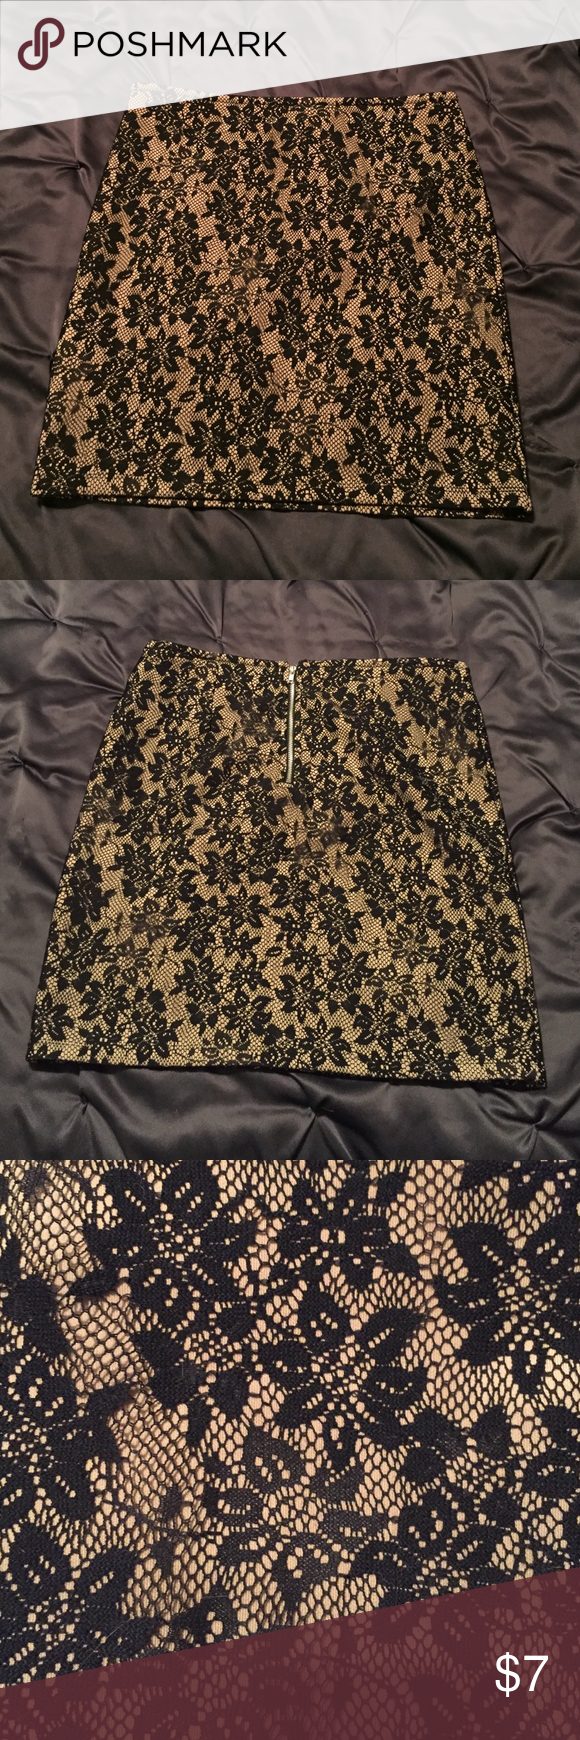 Lace overlay mini skirt. Large. 🎀 Forever 21. Mini. Large. Lace. Sexy. Perfect for holidays. Like new condition. 🎀 Forever 21 Skirts Mini